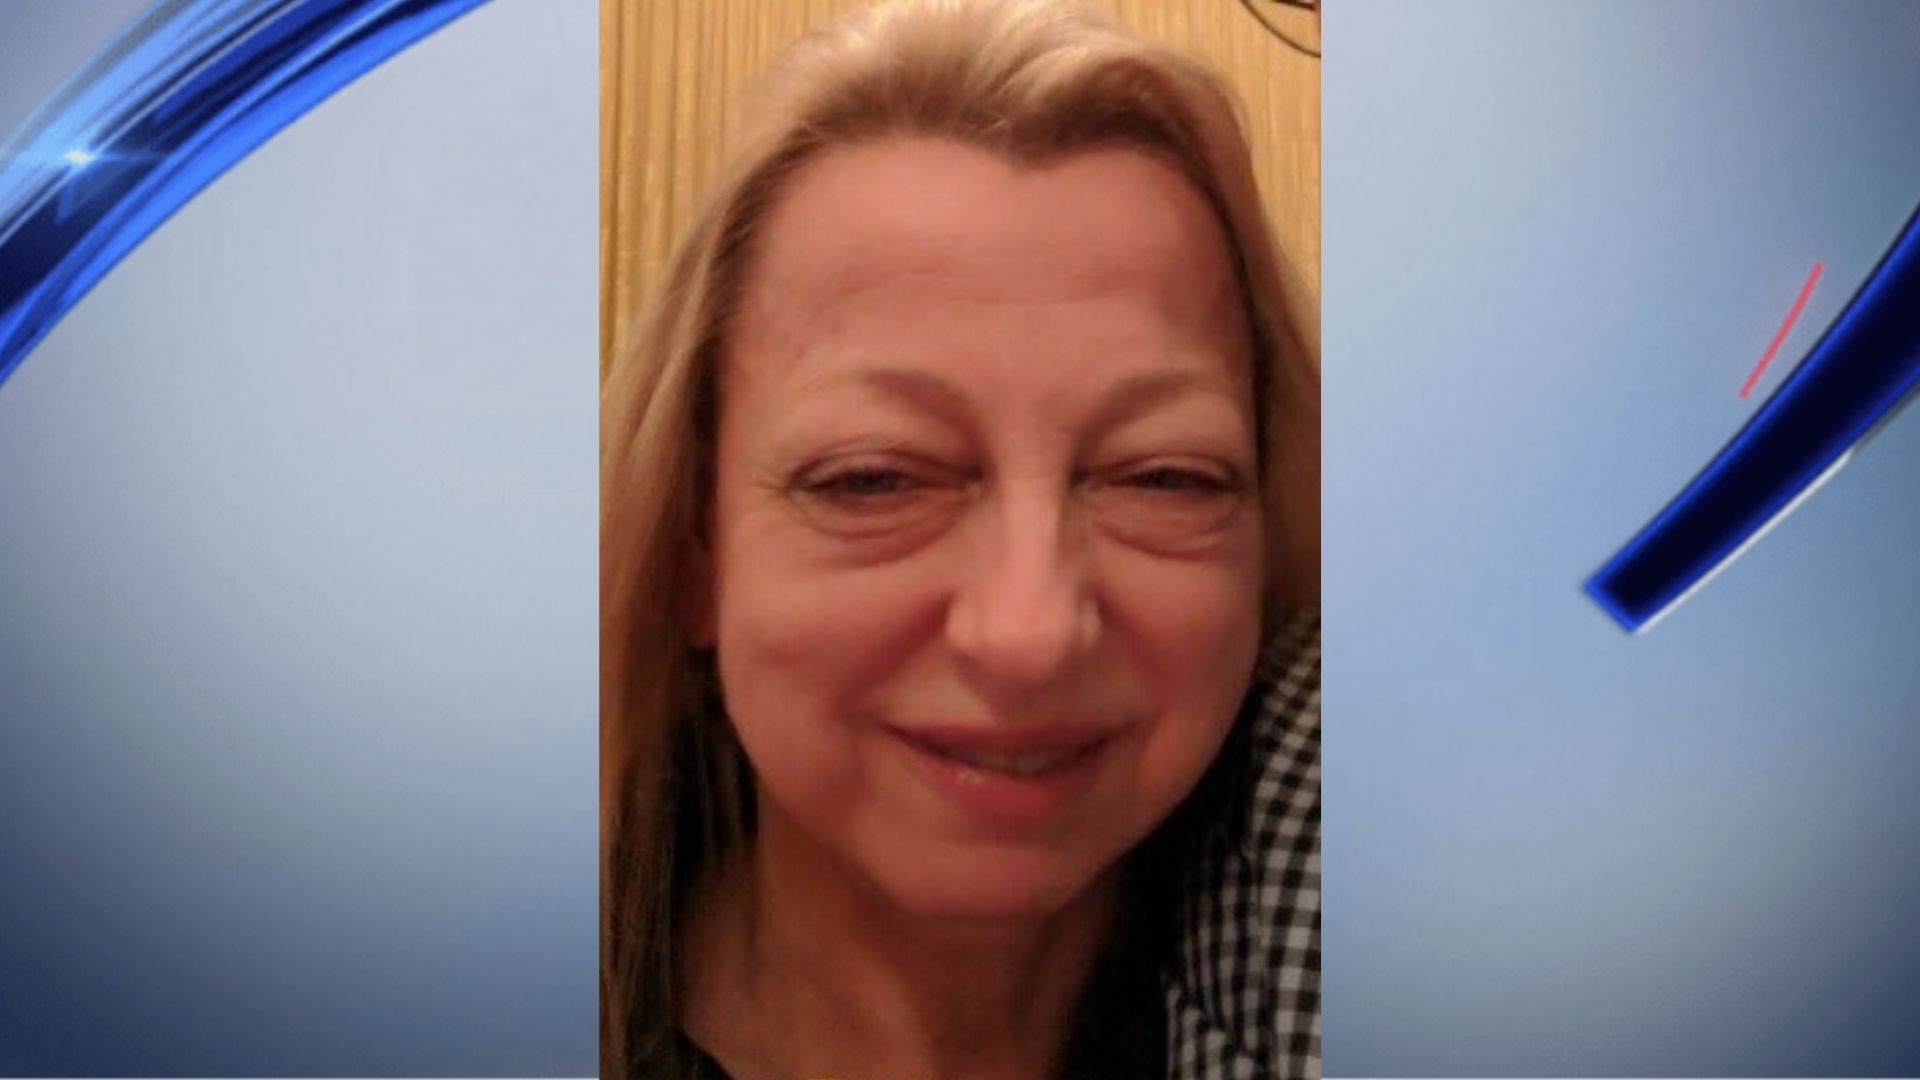 The body of missing Emmy-winning production designer Evelyn Sakash was found Tuesday in her Queens apartment, according to police. Sakash was last seen alive Sept. 30, 2020. (NYPD)